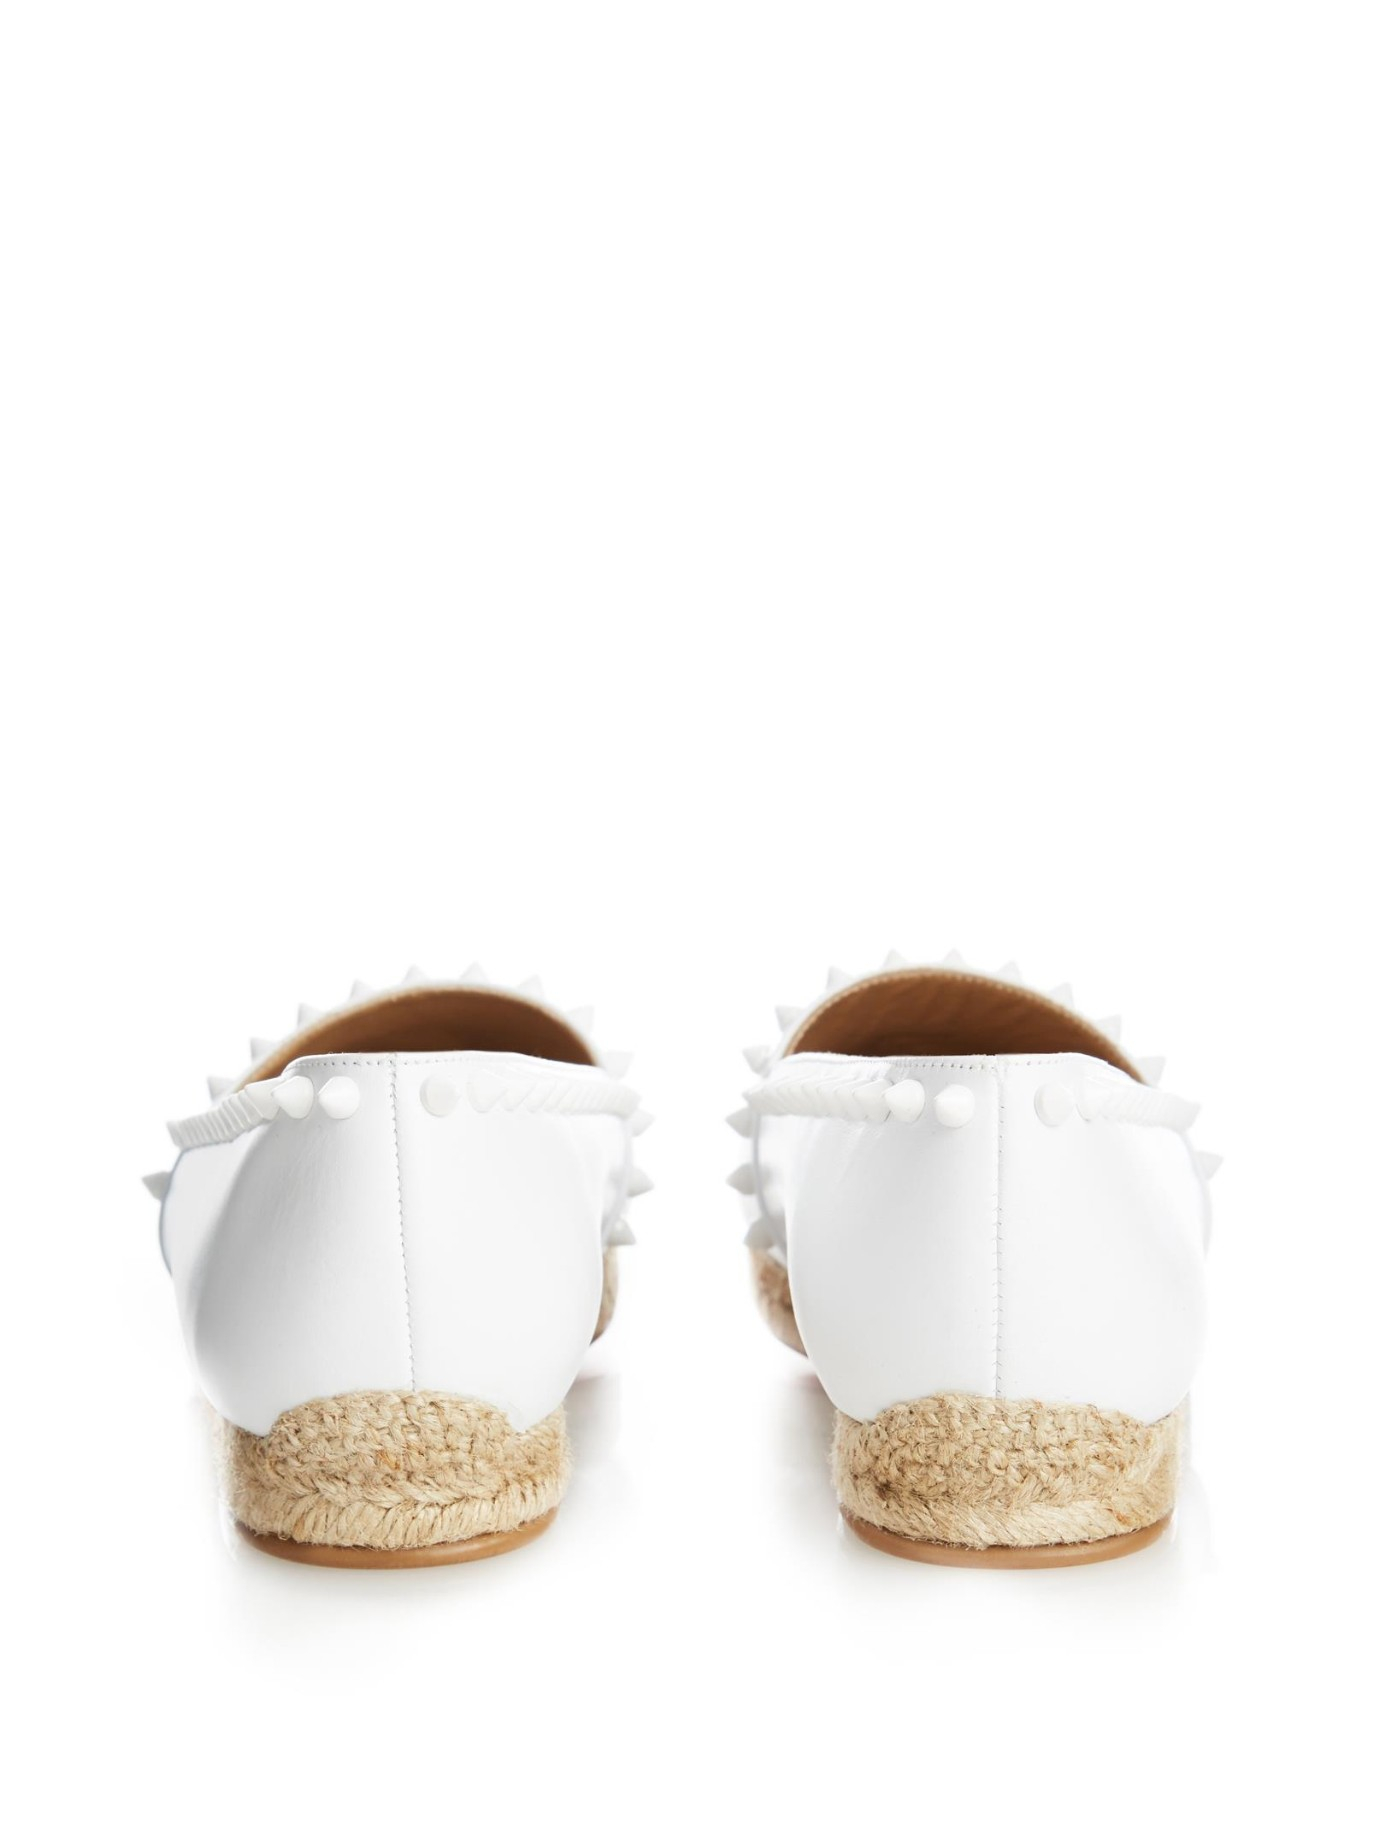 christian louboutin replica shoes - Christian louboutin Ares Stud-Embellished Espadrilles in White | Lyst